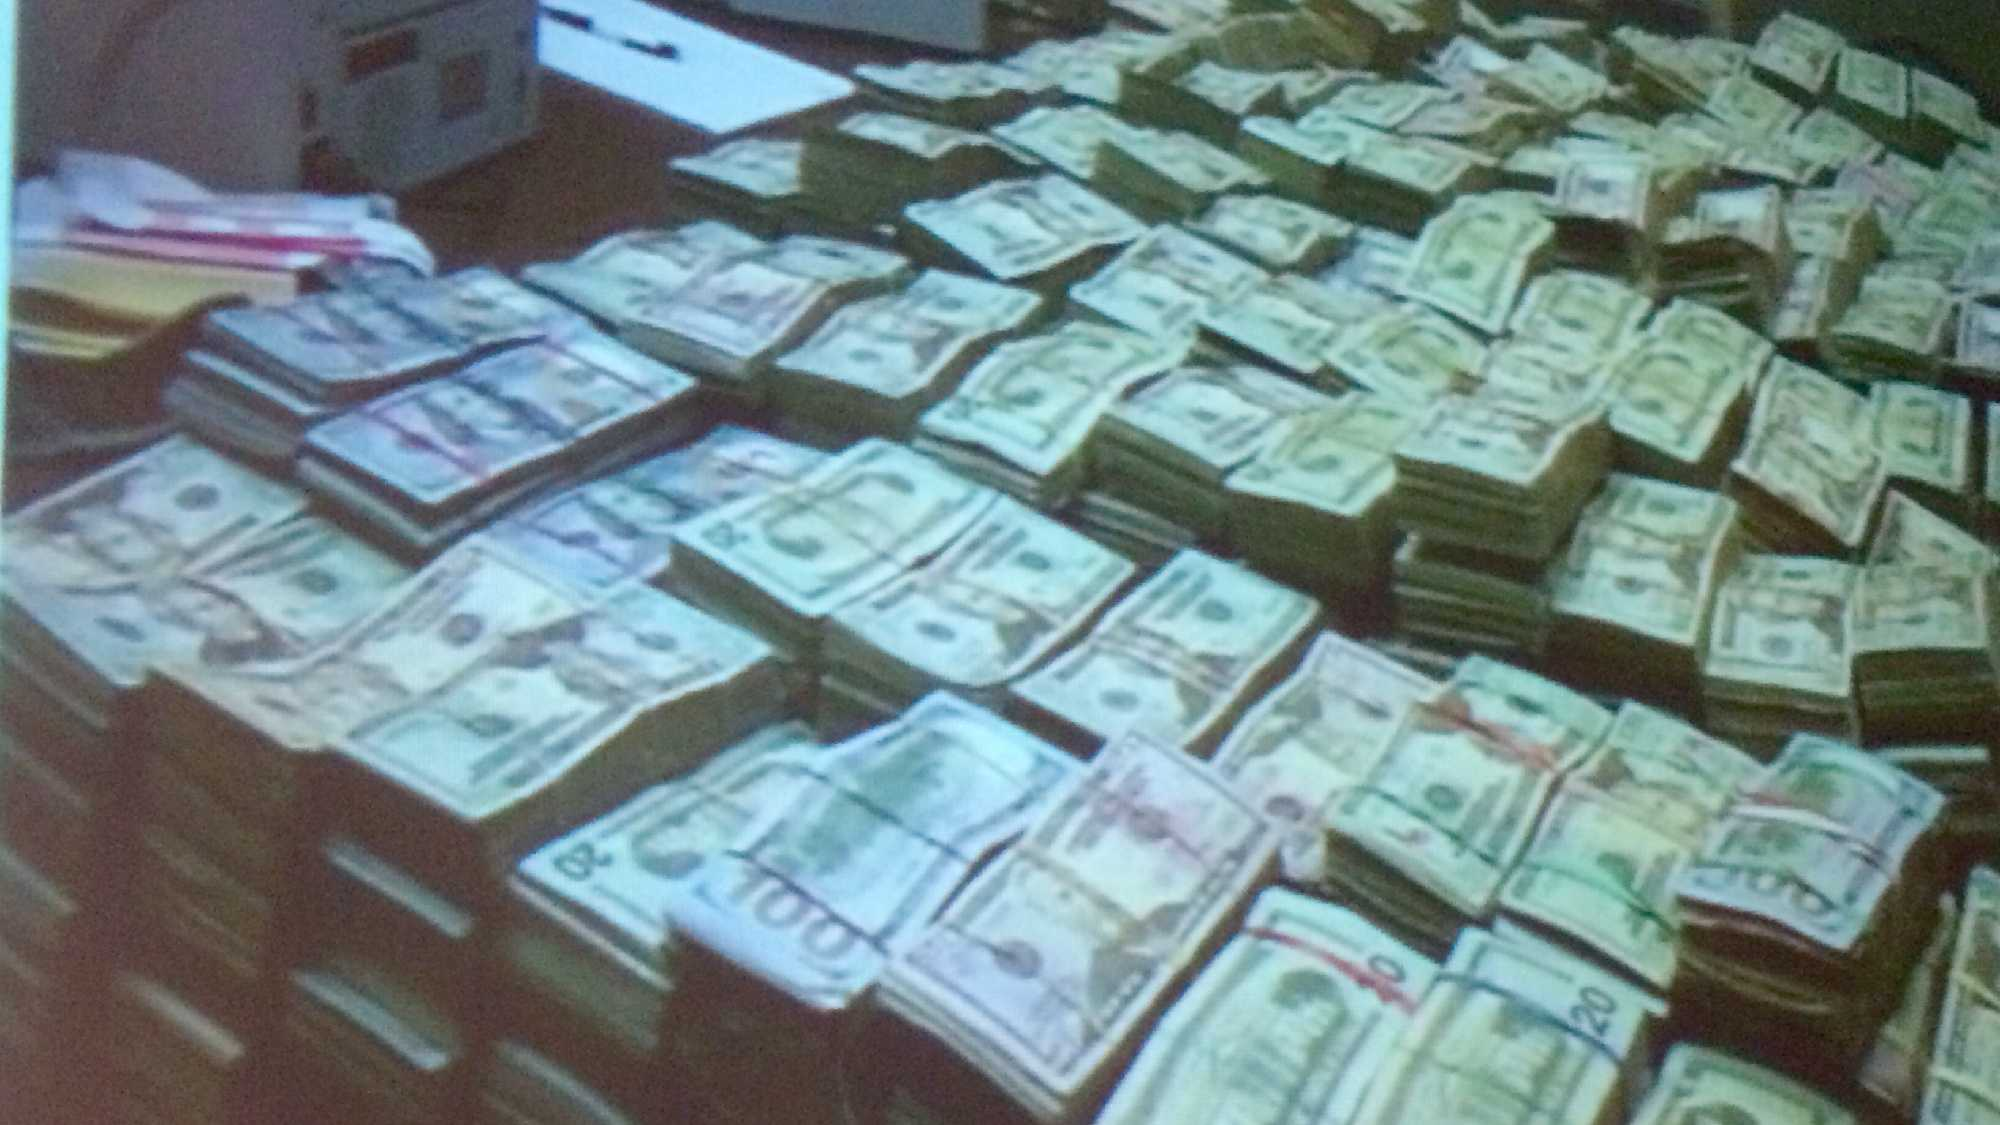 Authorities in Lancaster County found $2.4 million in cash during a drug money bust Thursday.